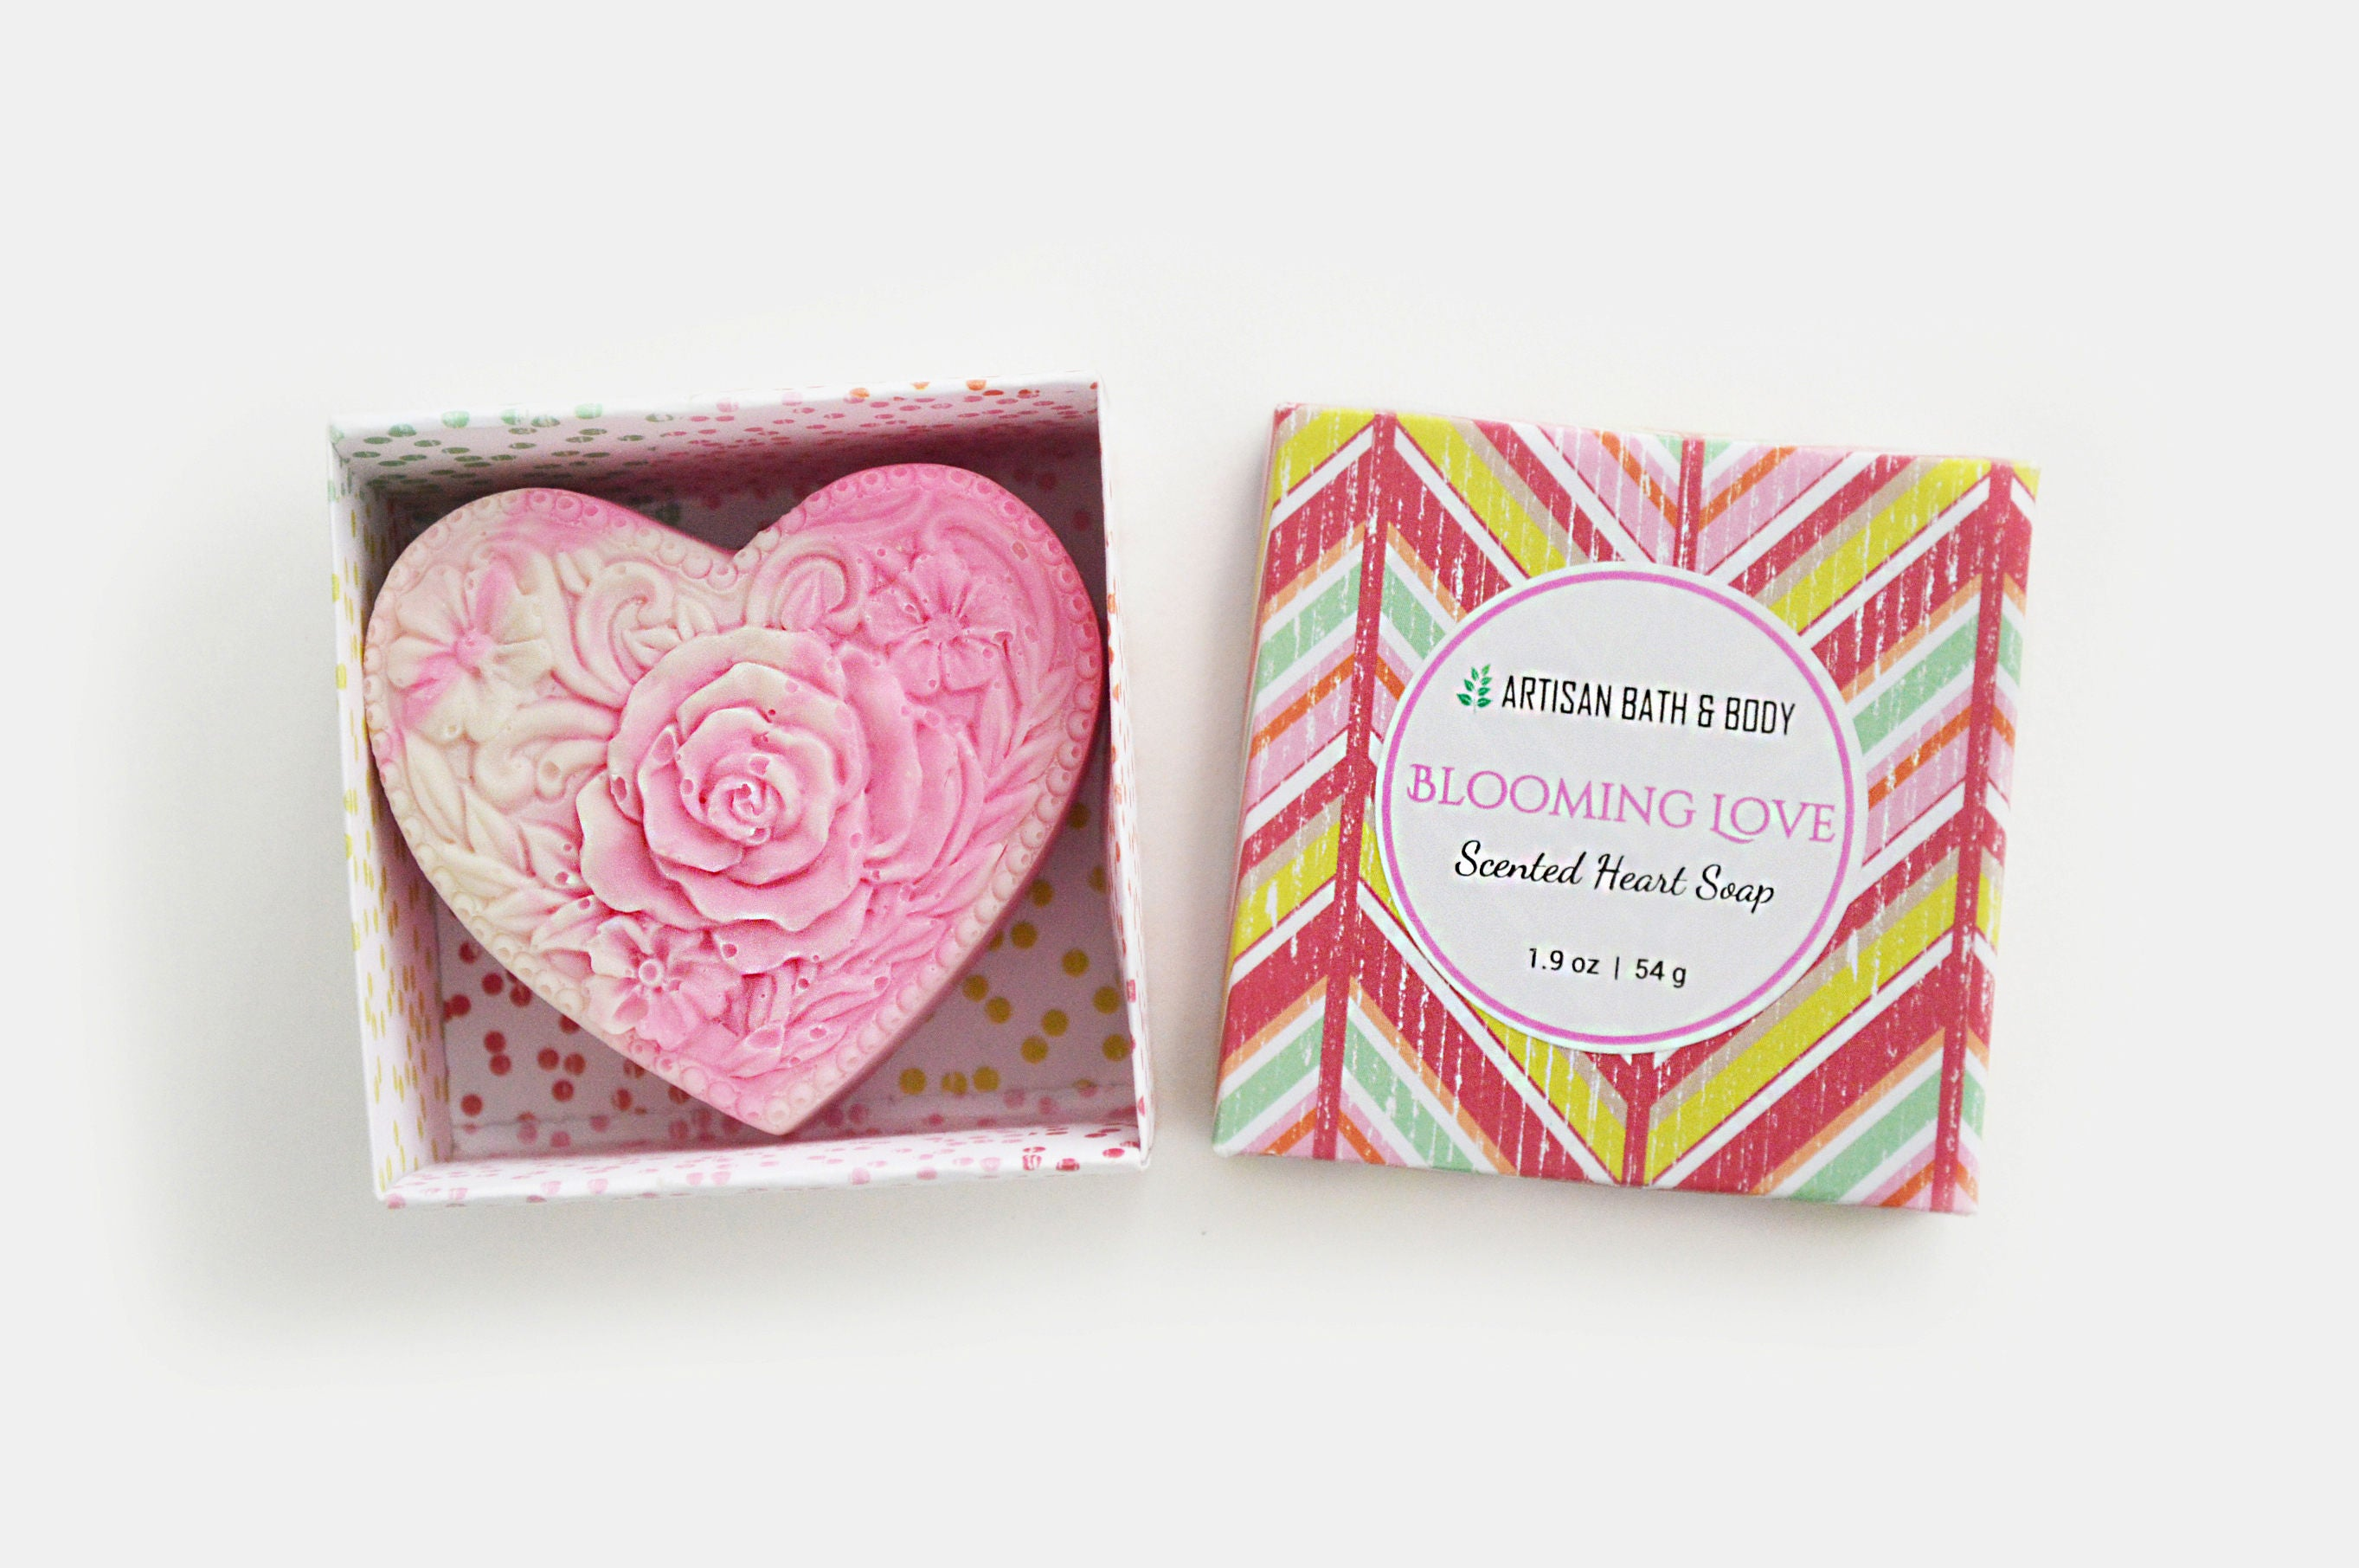 Blooming Love Pink Heart Soap Scented Swirl Soap Bar Love